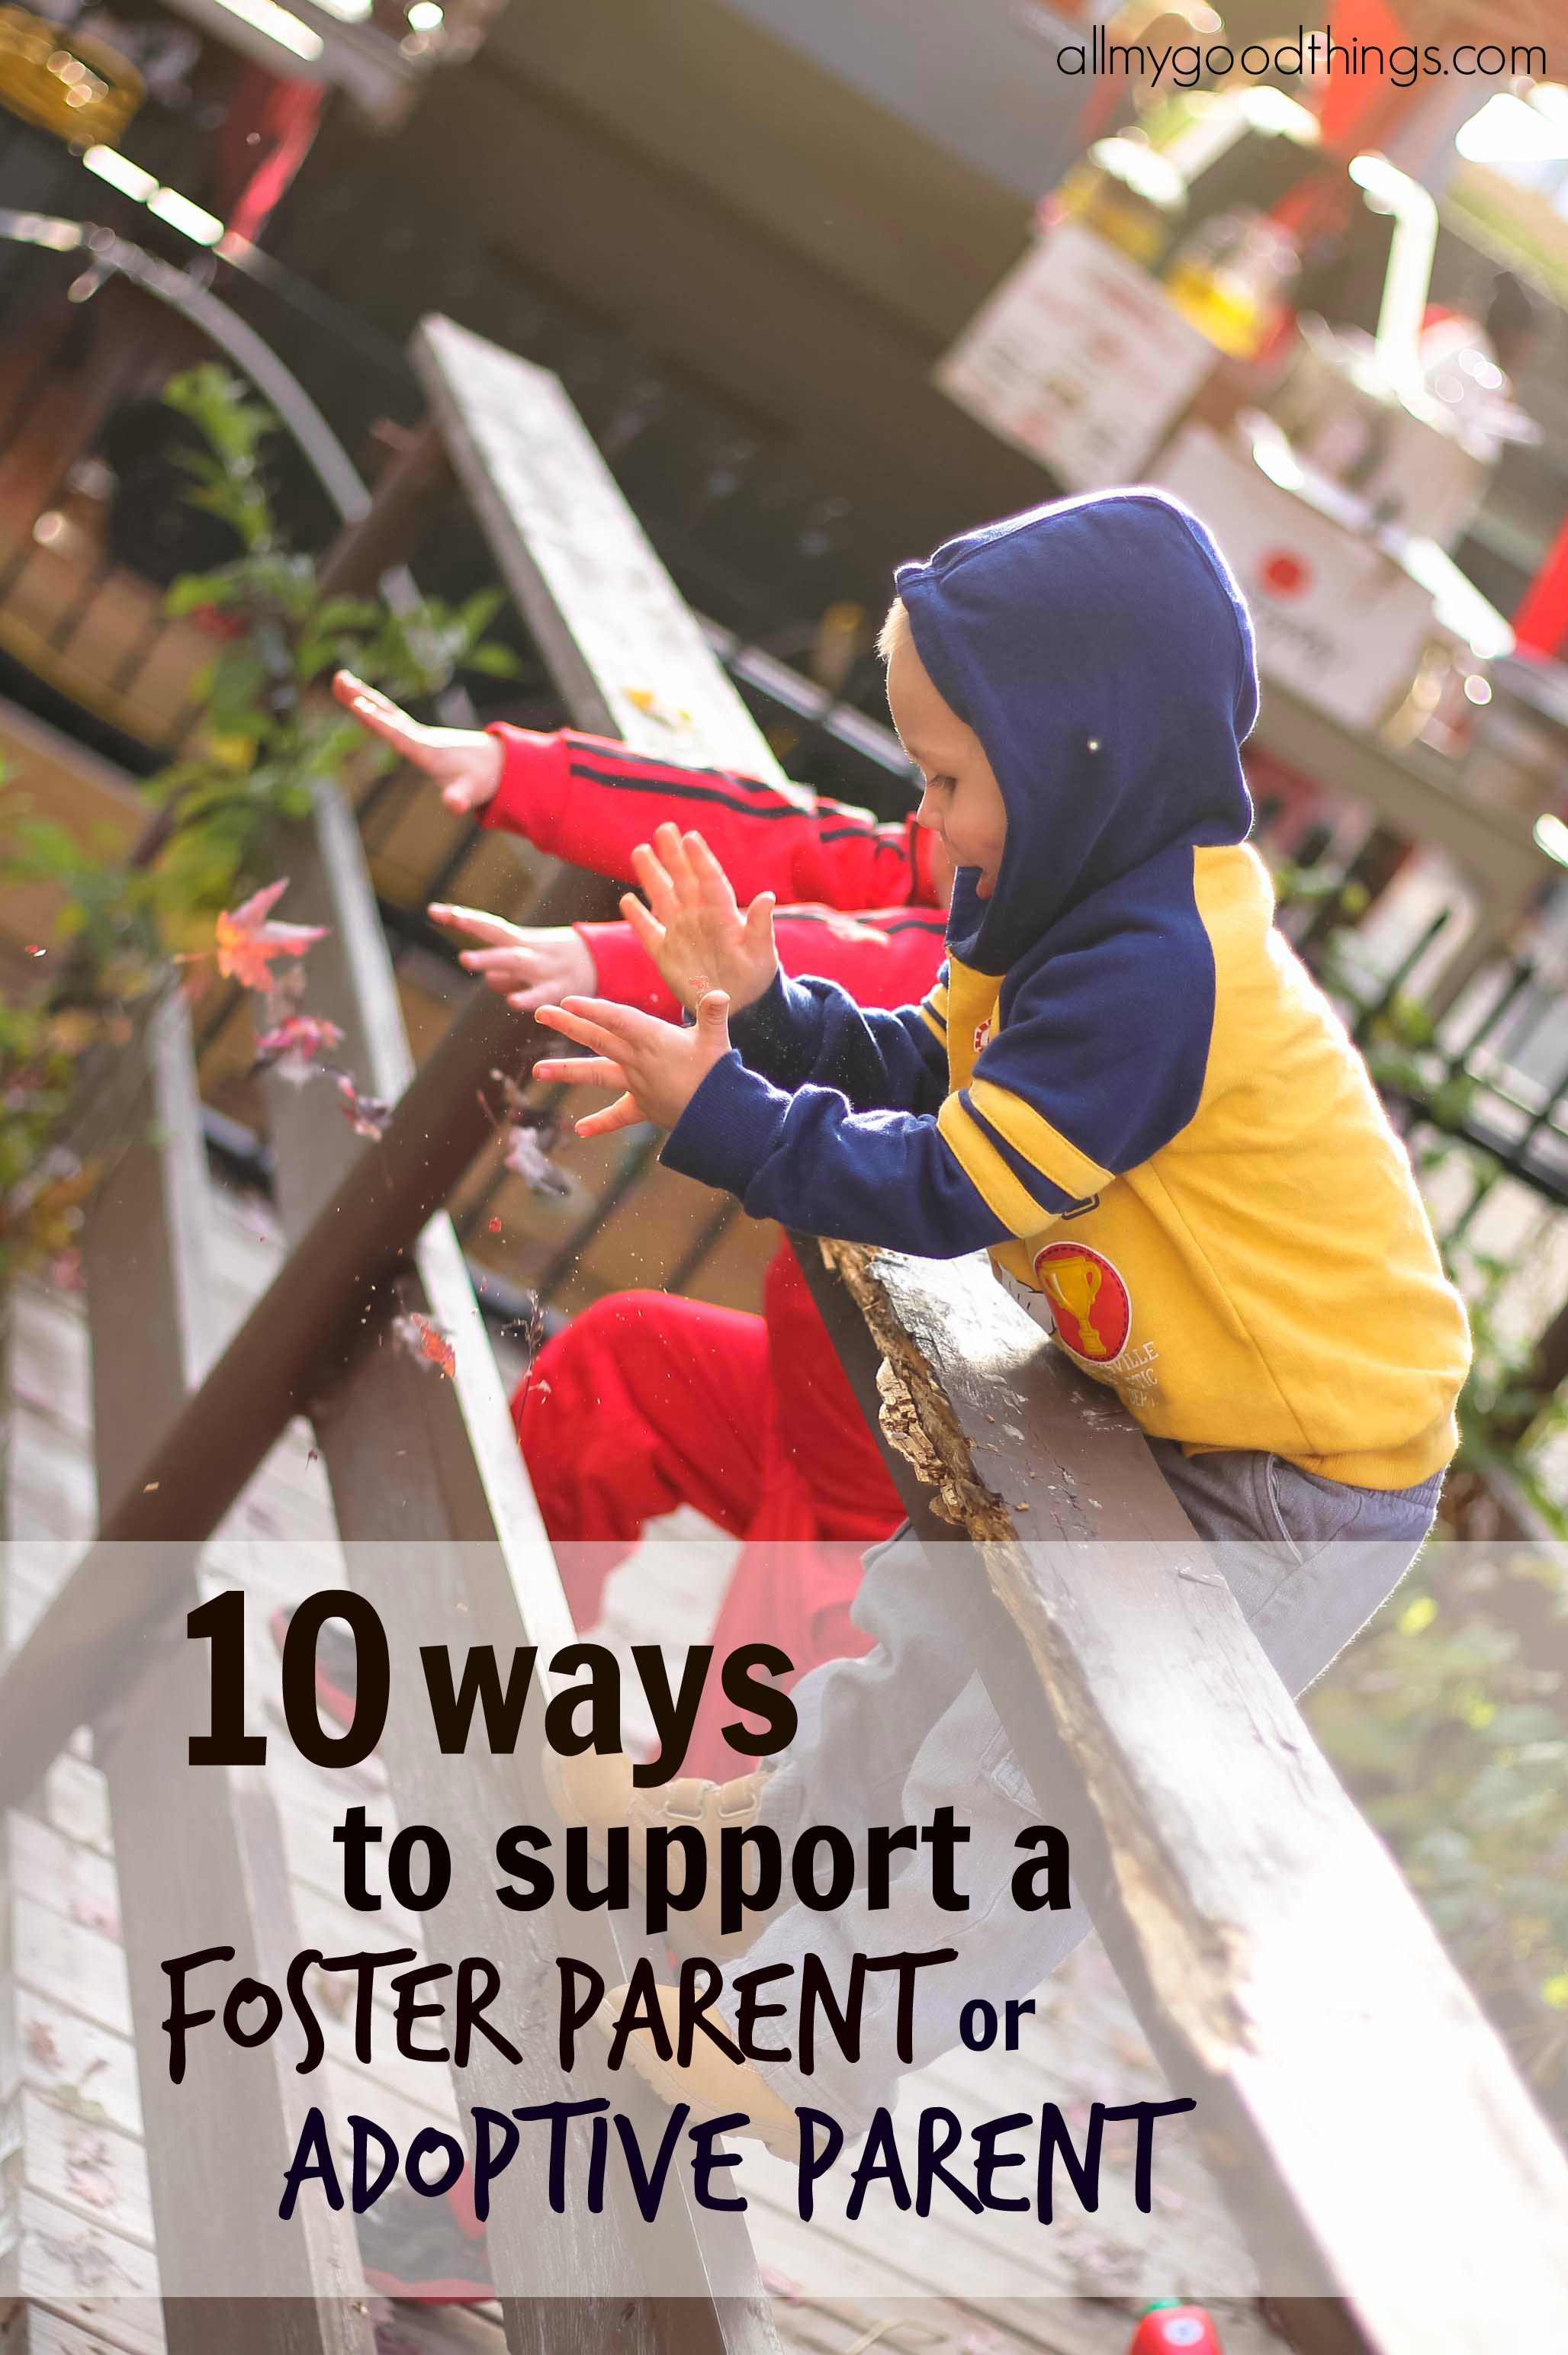 Ways to support a Foster parent or adoptive parent